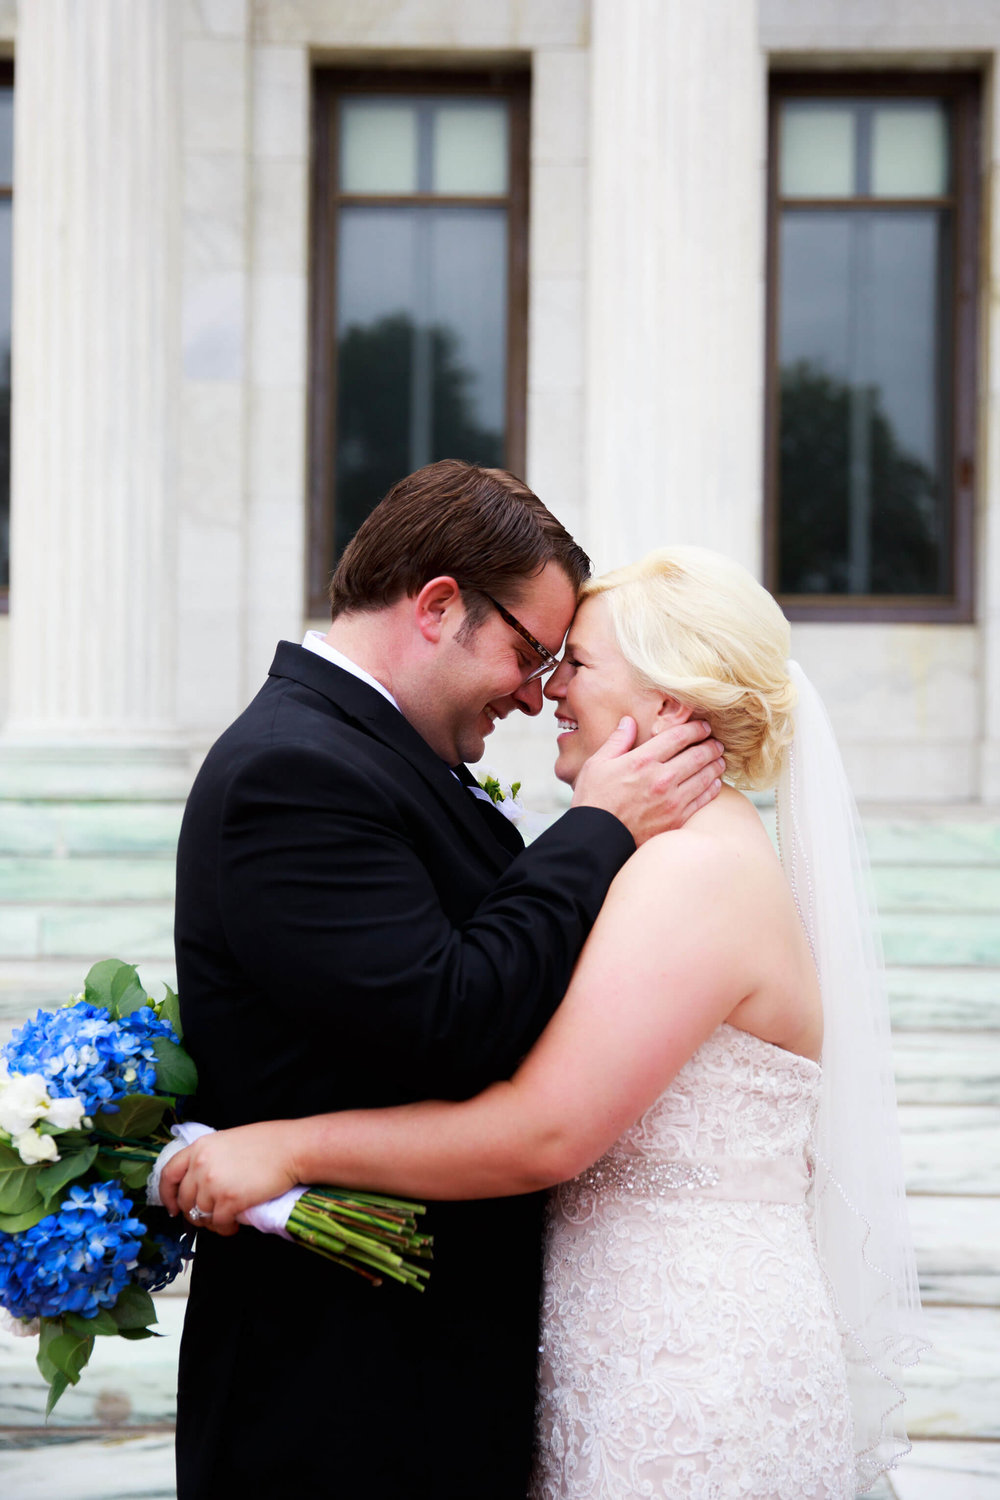 Carrie+Jon_EmilyMandersPhotography_Weddings-331.jpg